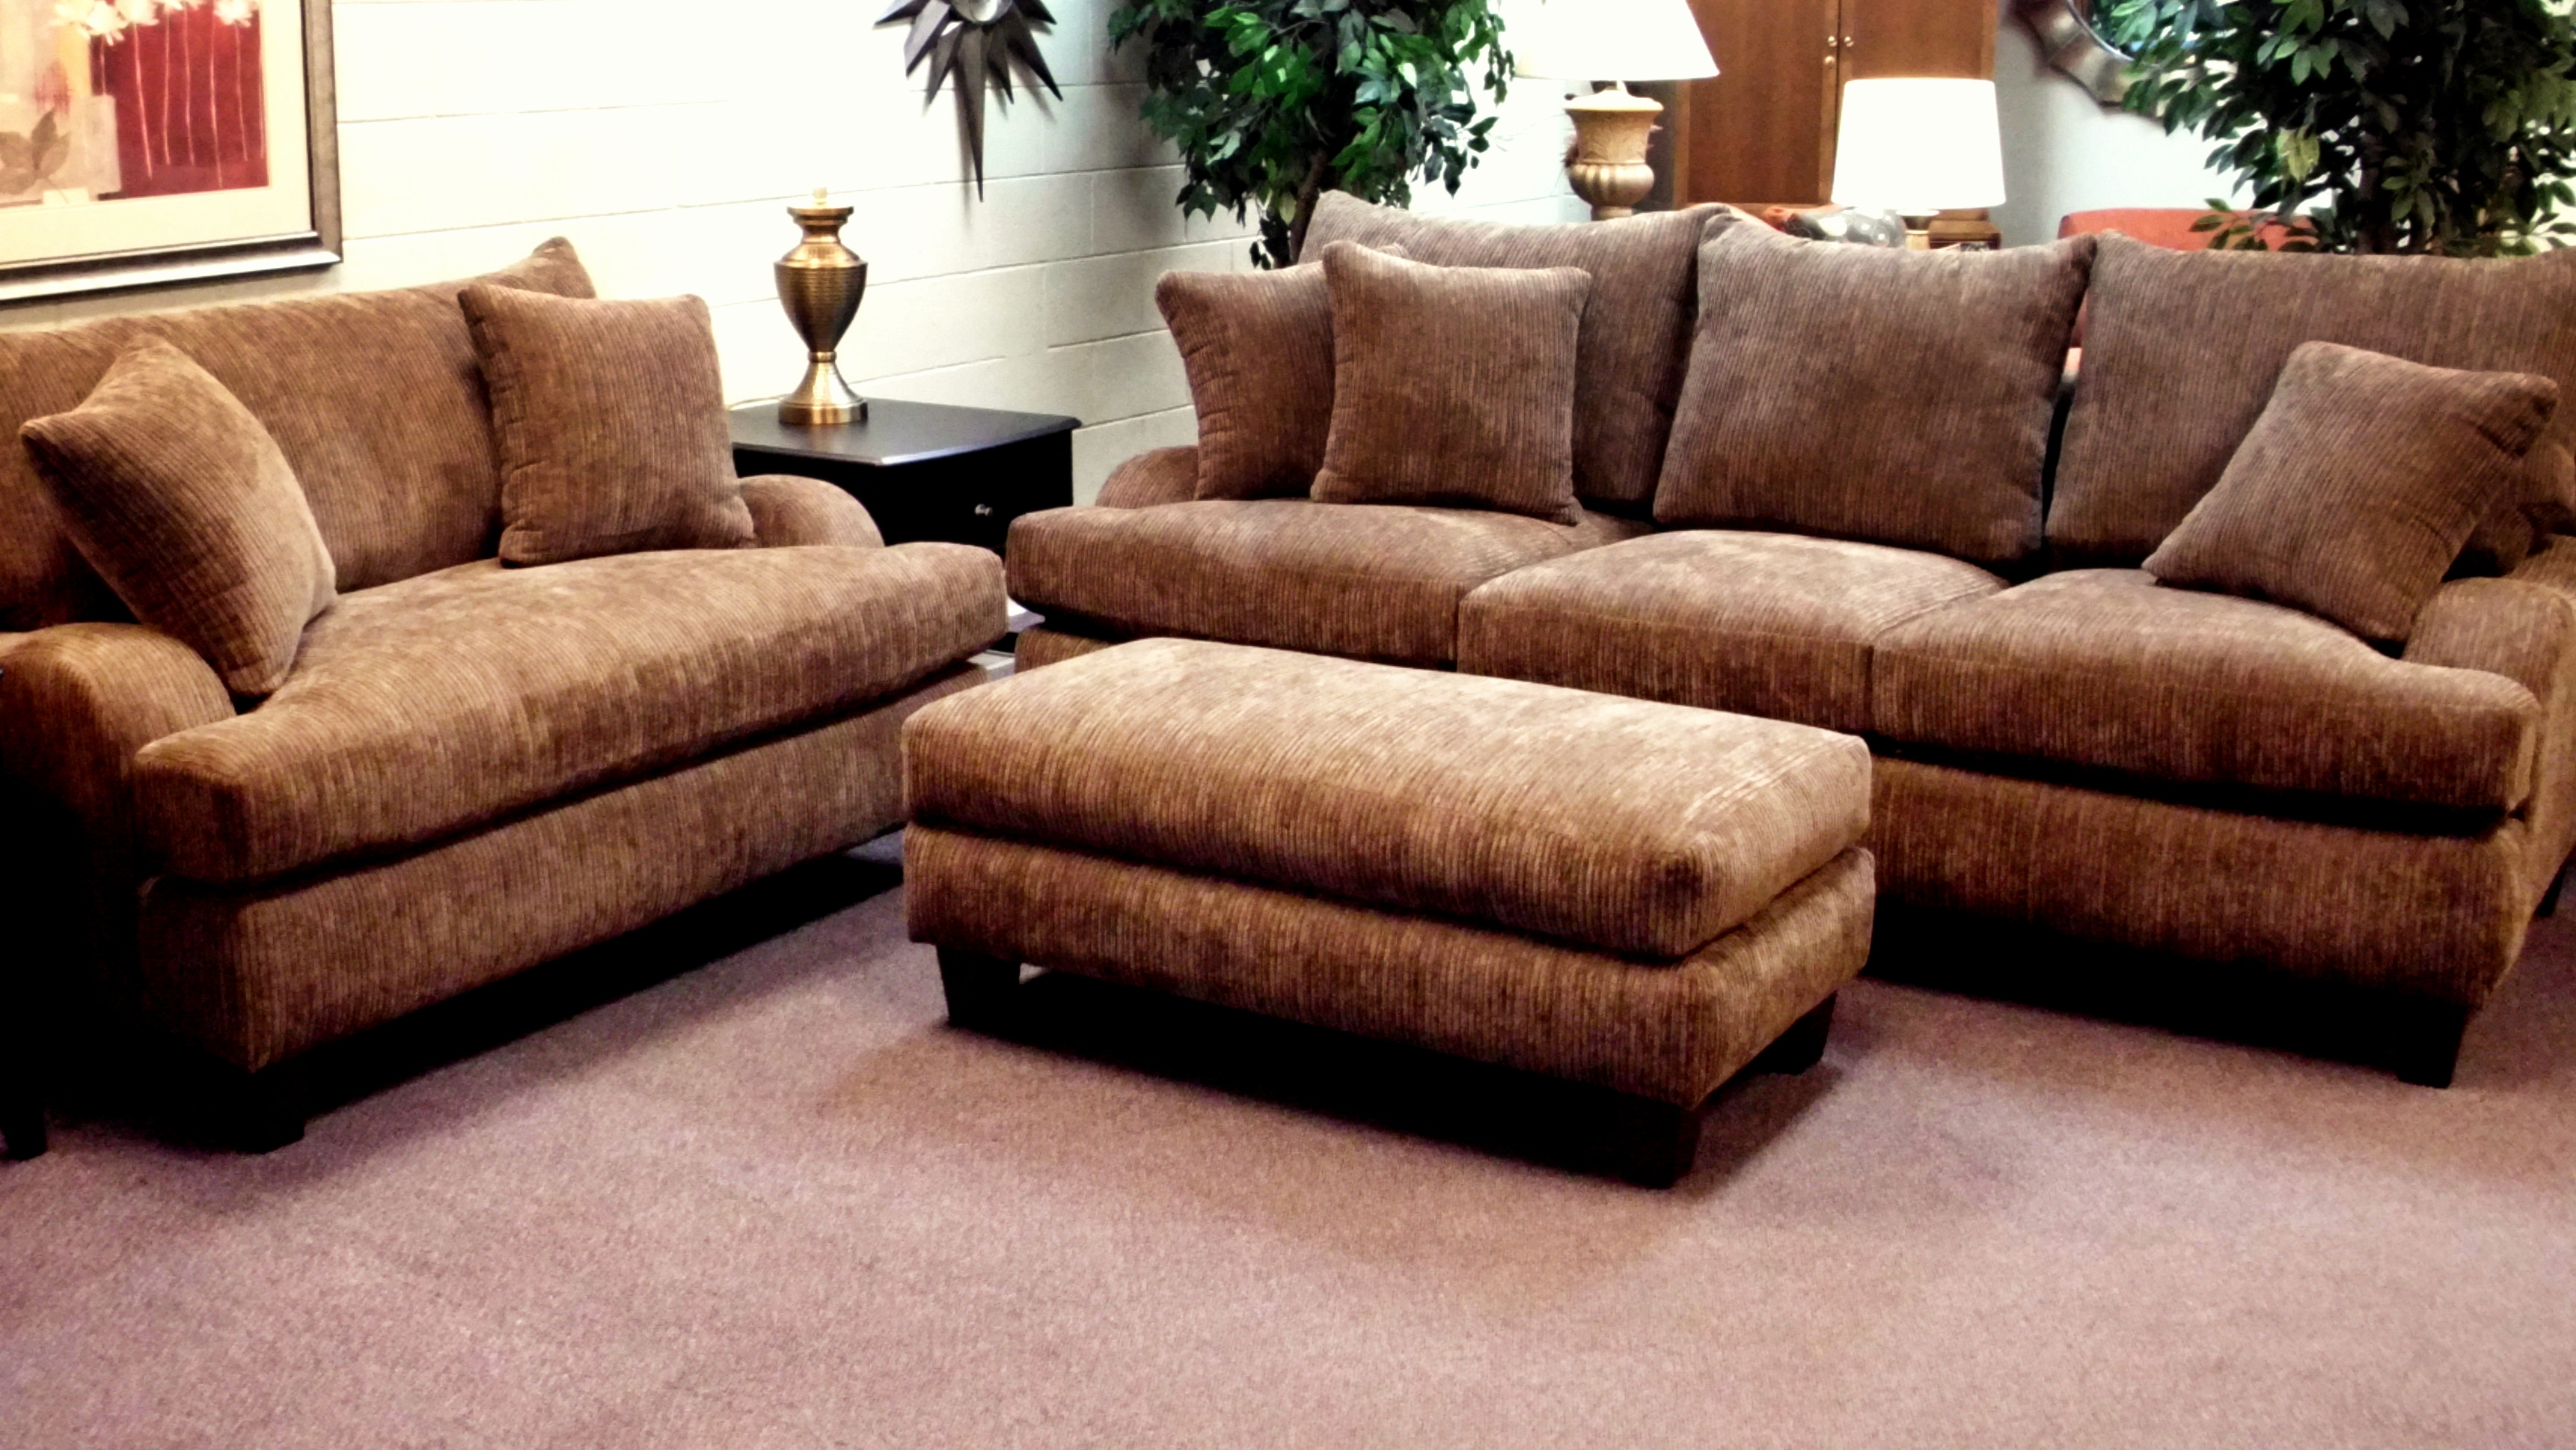 Furniture Comfy Design Of Oversized Couch For Charming Living Throughout Deep Cushion Sofa (Image 7 of 15)